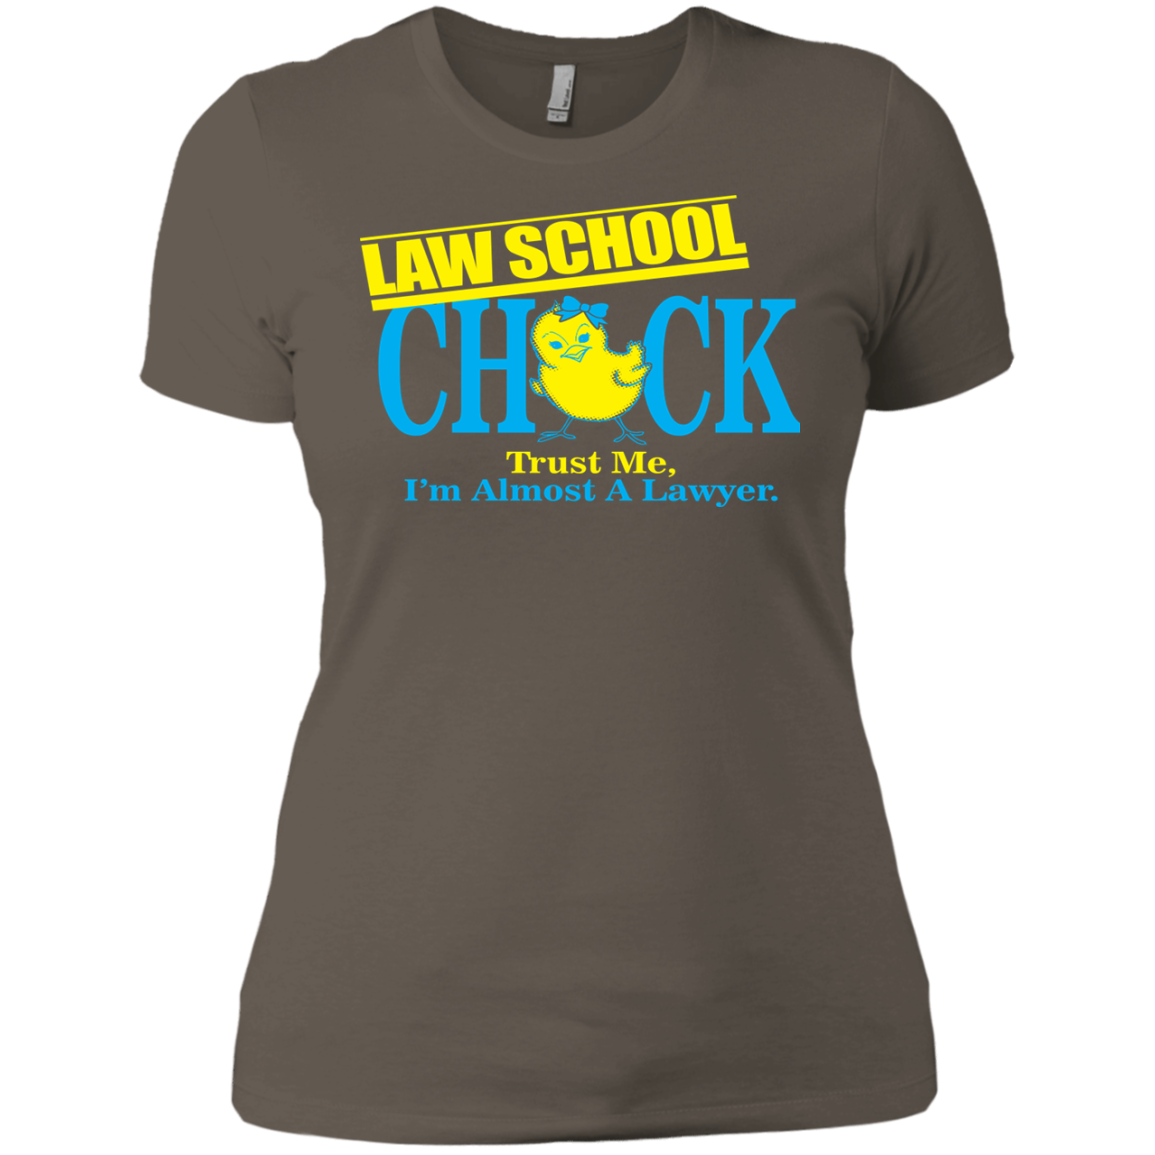 Law School Chick Trust Me I'm Almost A Lawyer - The Sun Cat